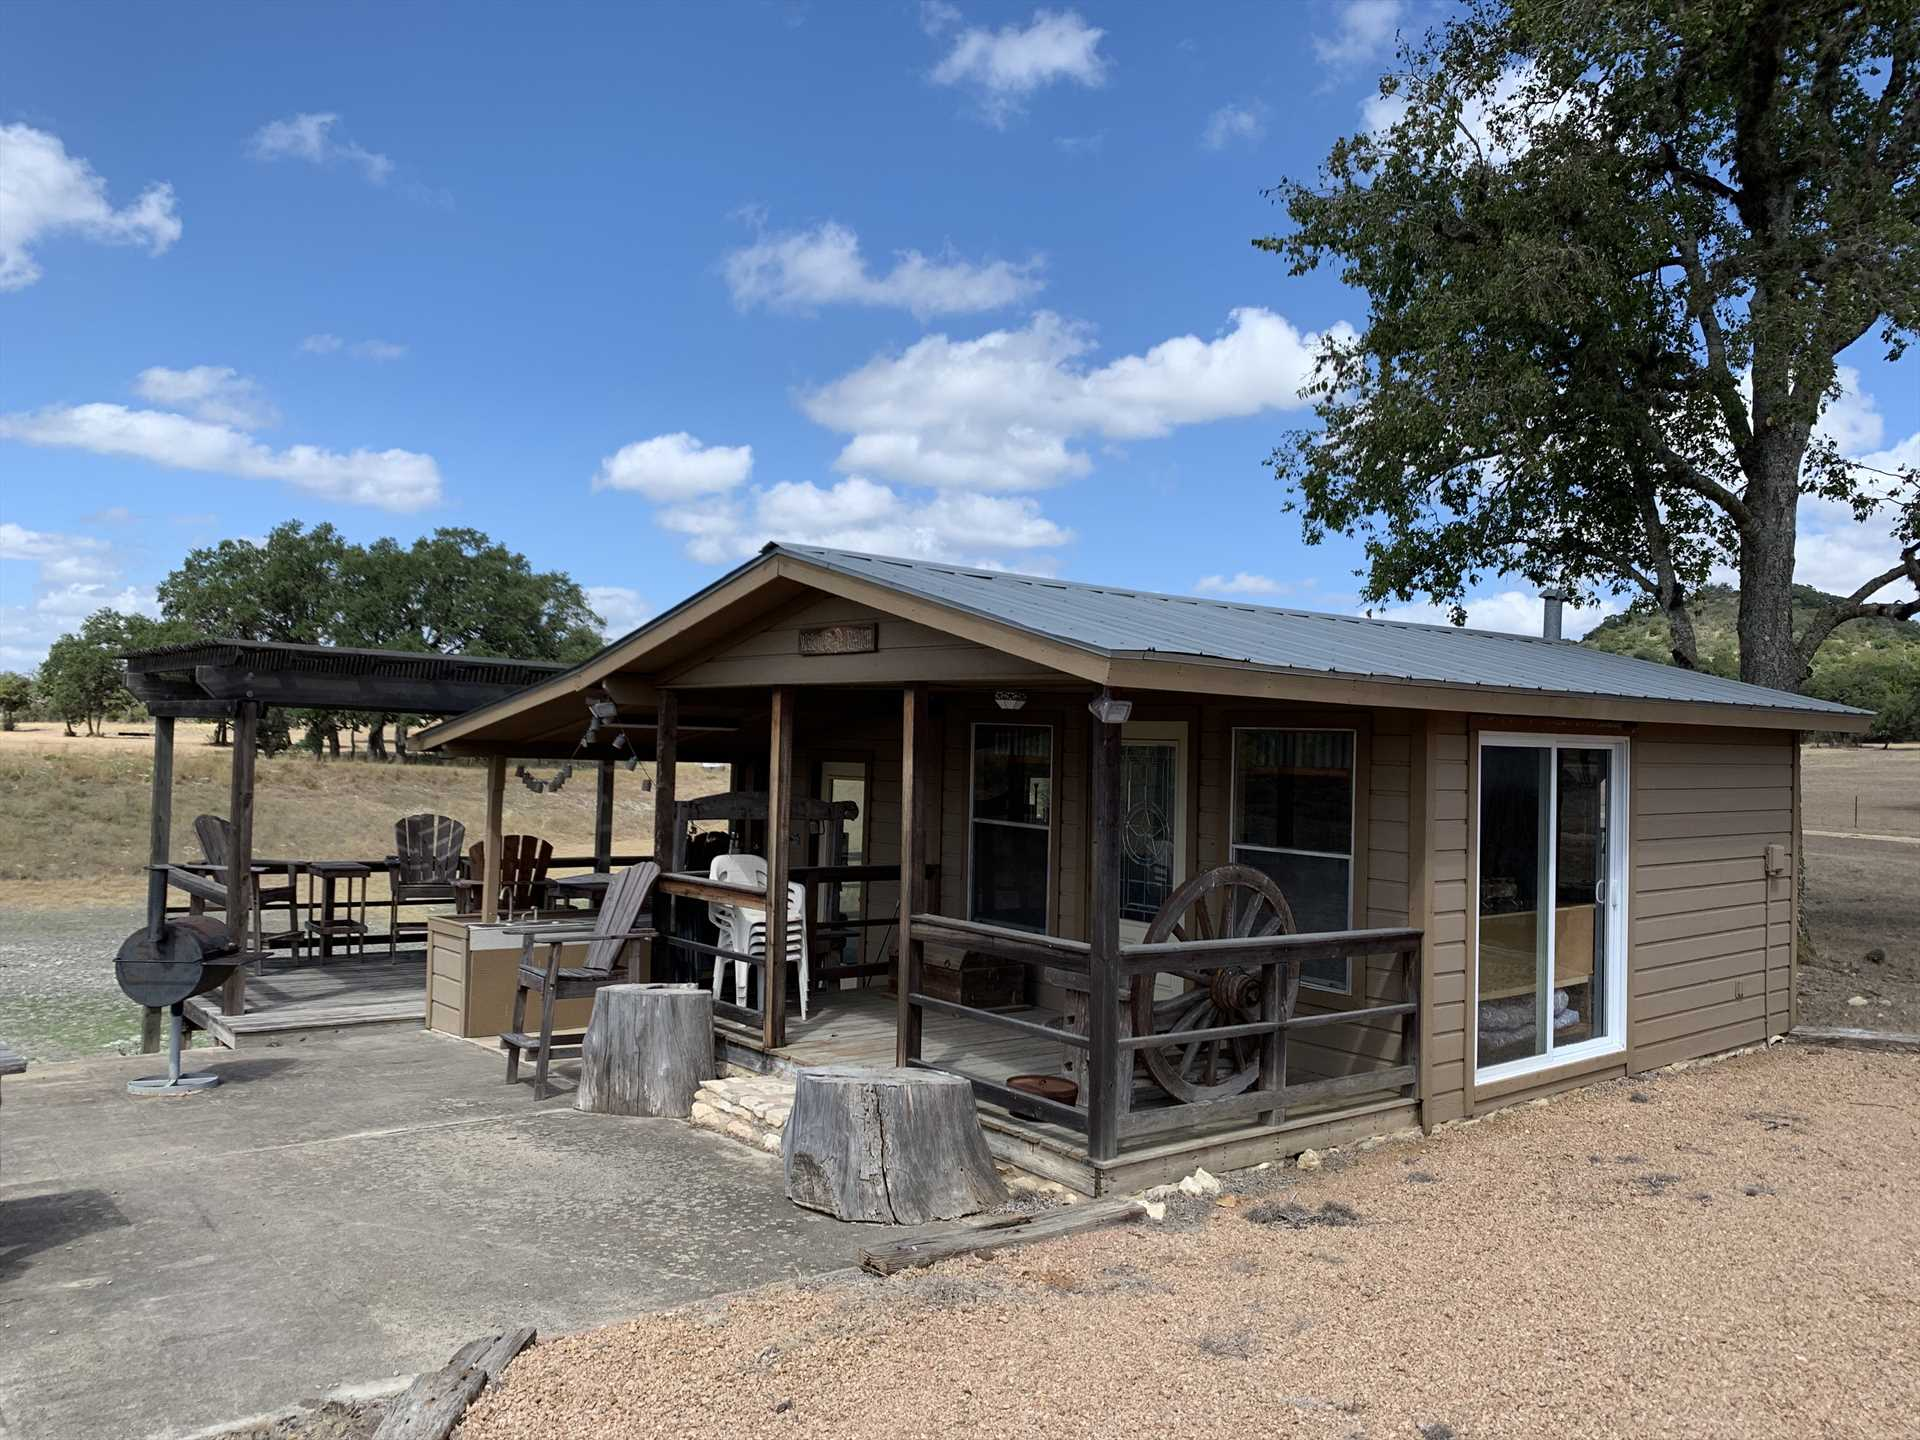 Feeling social? The shared pavilion space is shared with the other cabins at the ranch, and it provides a great space to mingle with your fellow travelers!